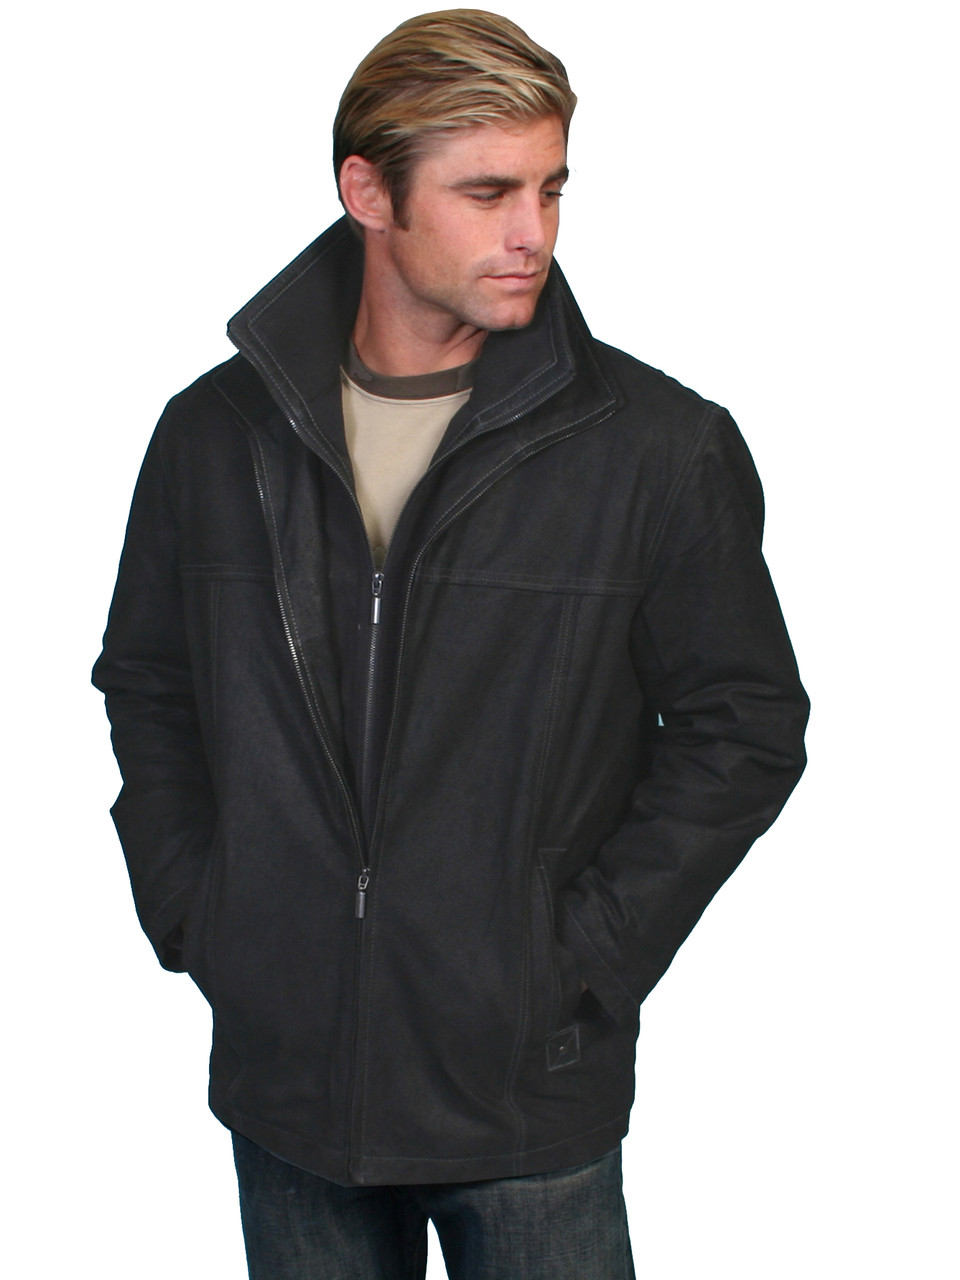 Scully Leather Men's Vintage Car Coat Black - Chaar